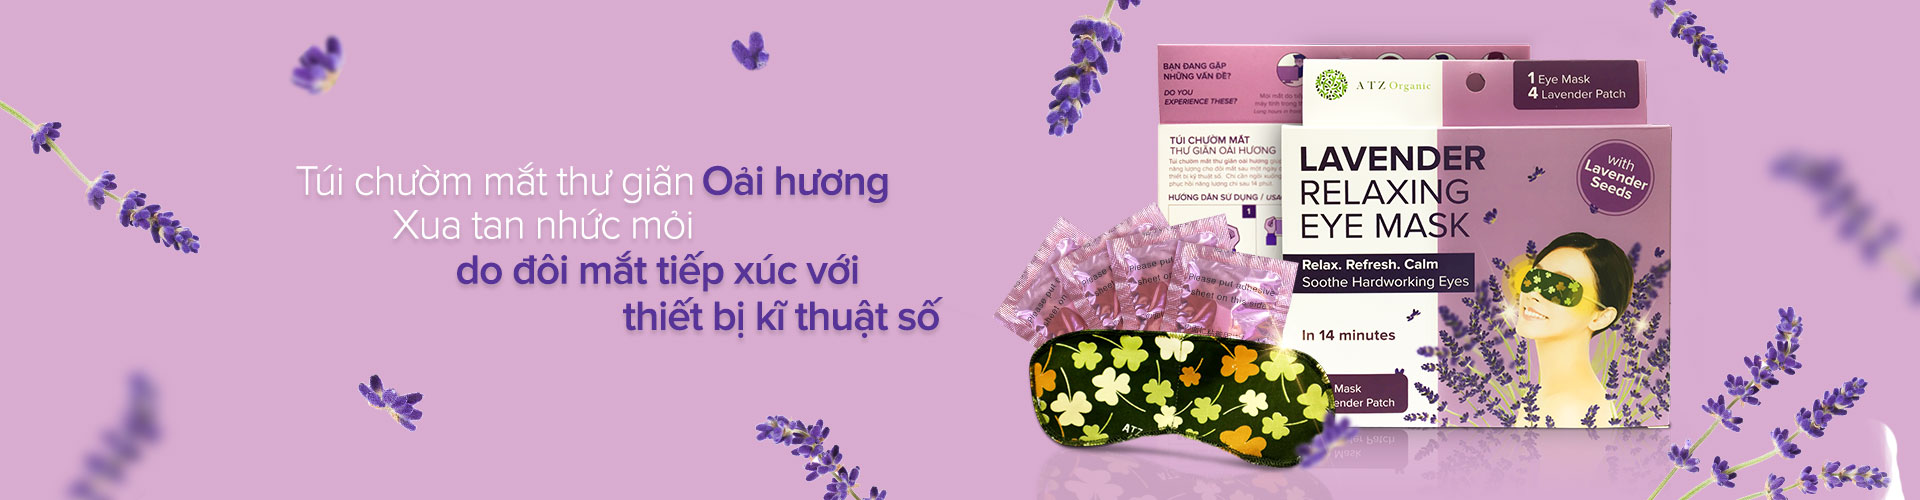 MẬT ONG HONEY & SPICES